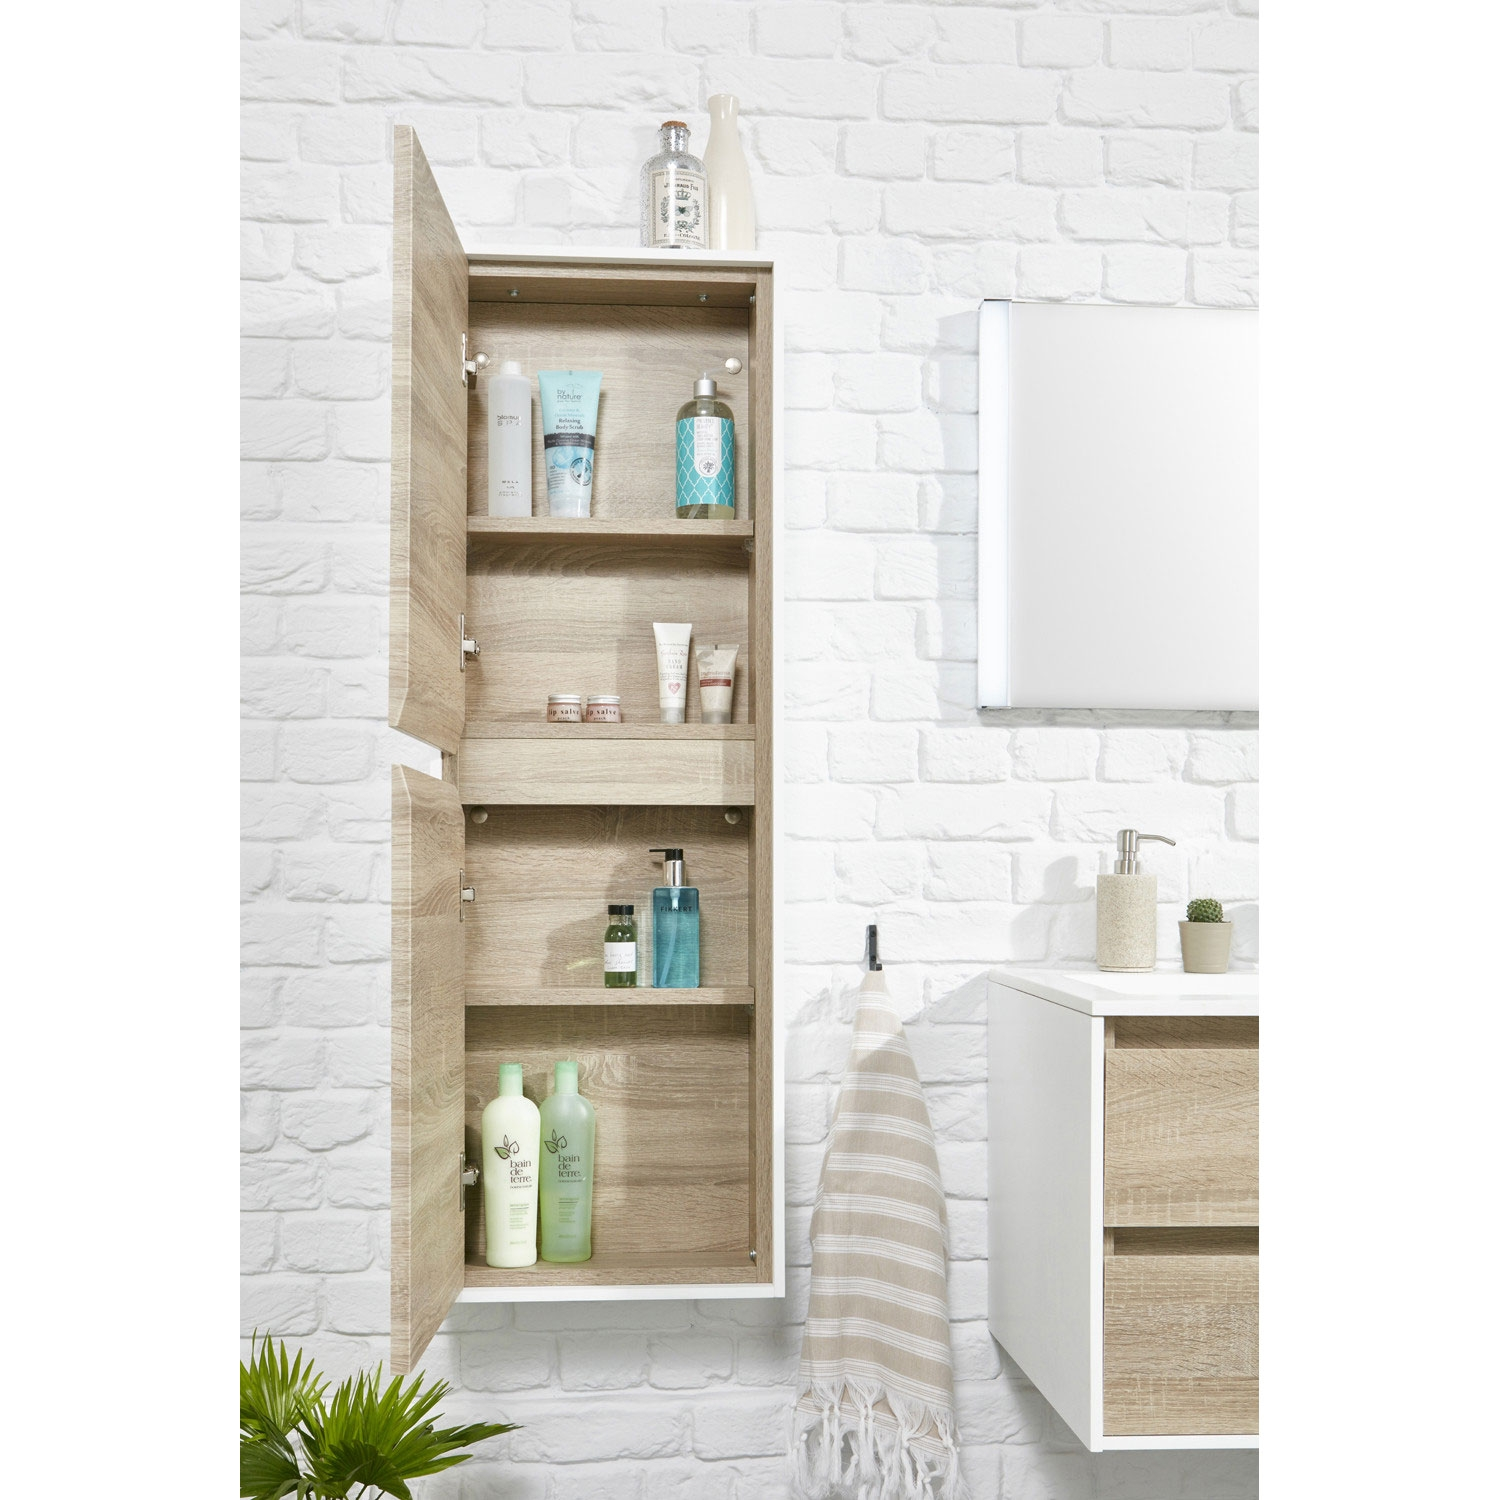 Verona Aquanatural Tall Unit with Solid Surface Panels 1200mm High - Gloss/Wood Effect